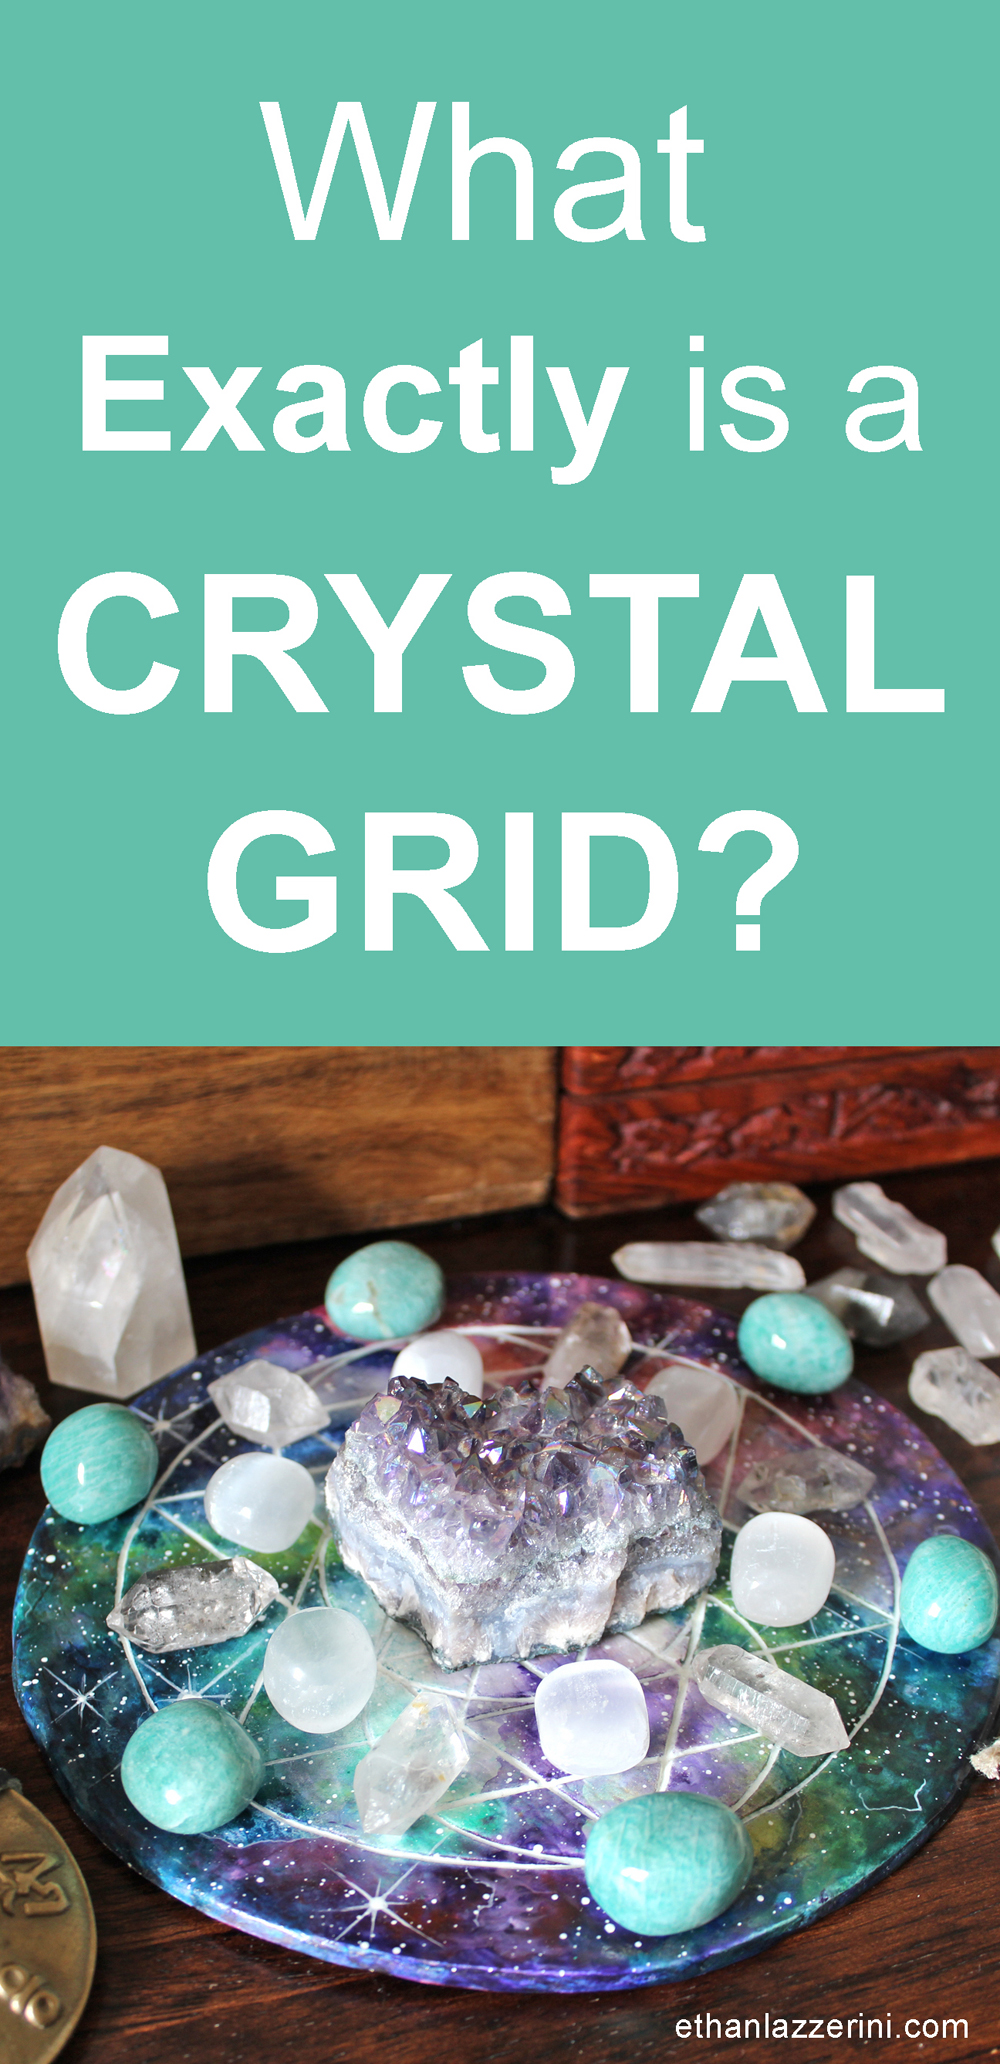 What is a crystal grid?